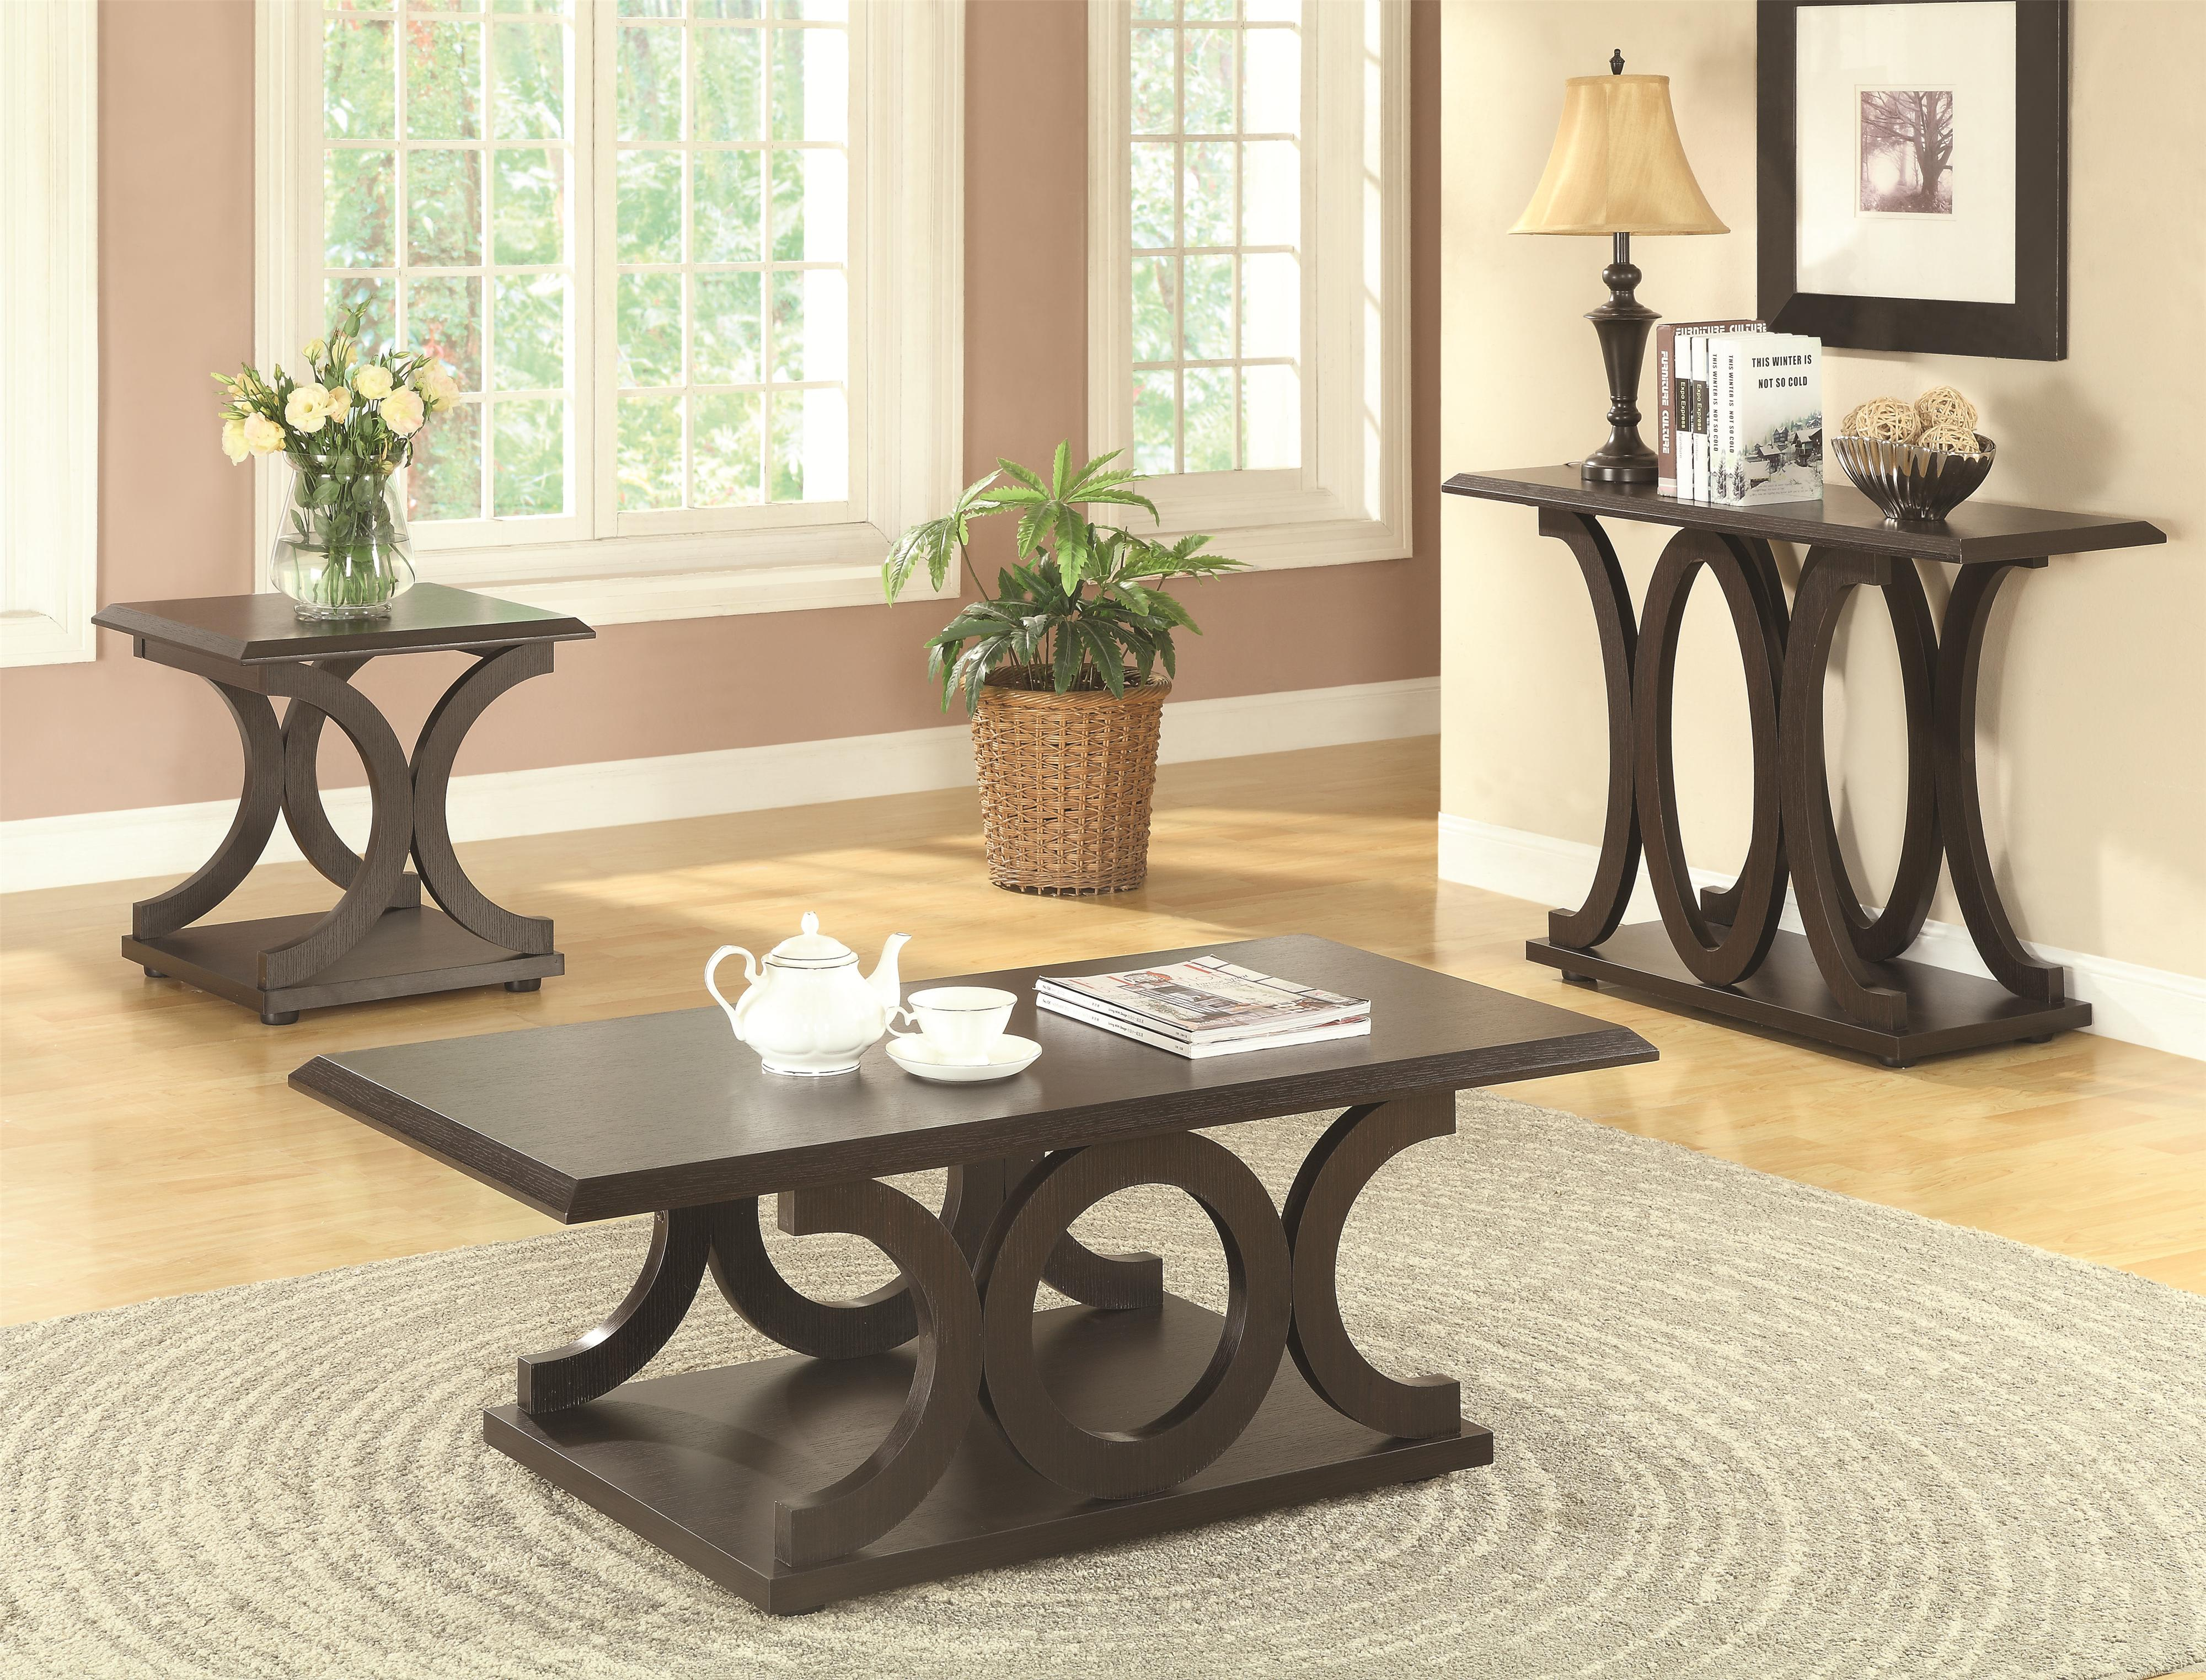 Ibanded Pc Cappuccino Coffee Table Set Dallas TX Occasional - Cappuccino coffee table